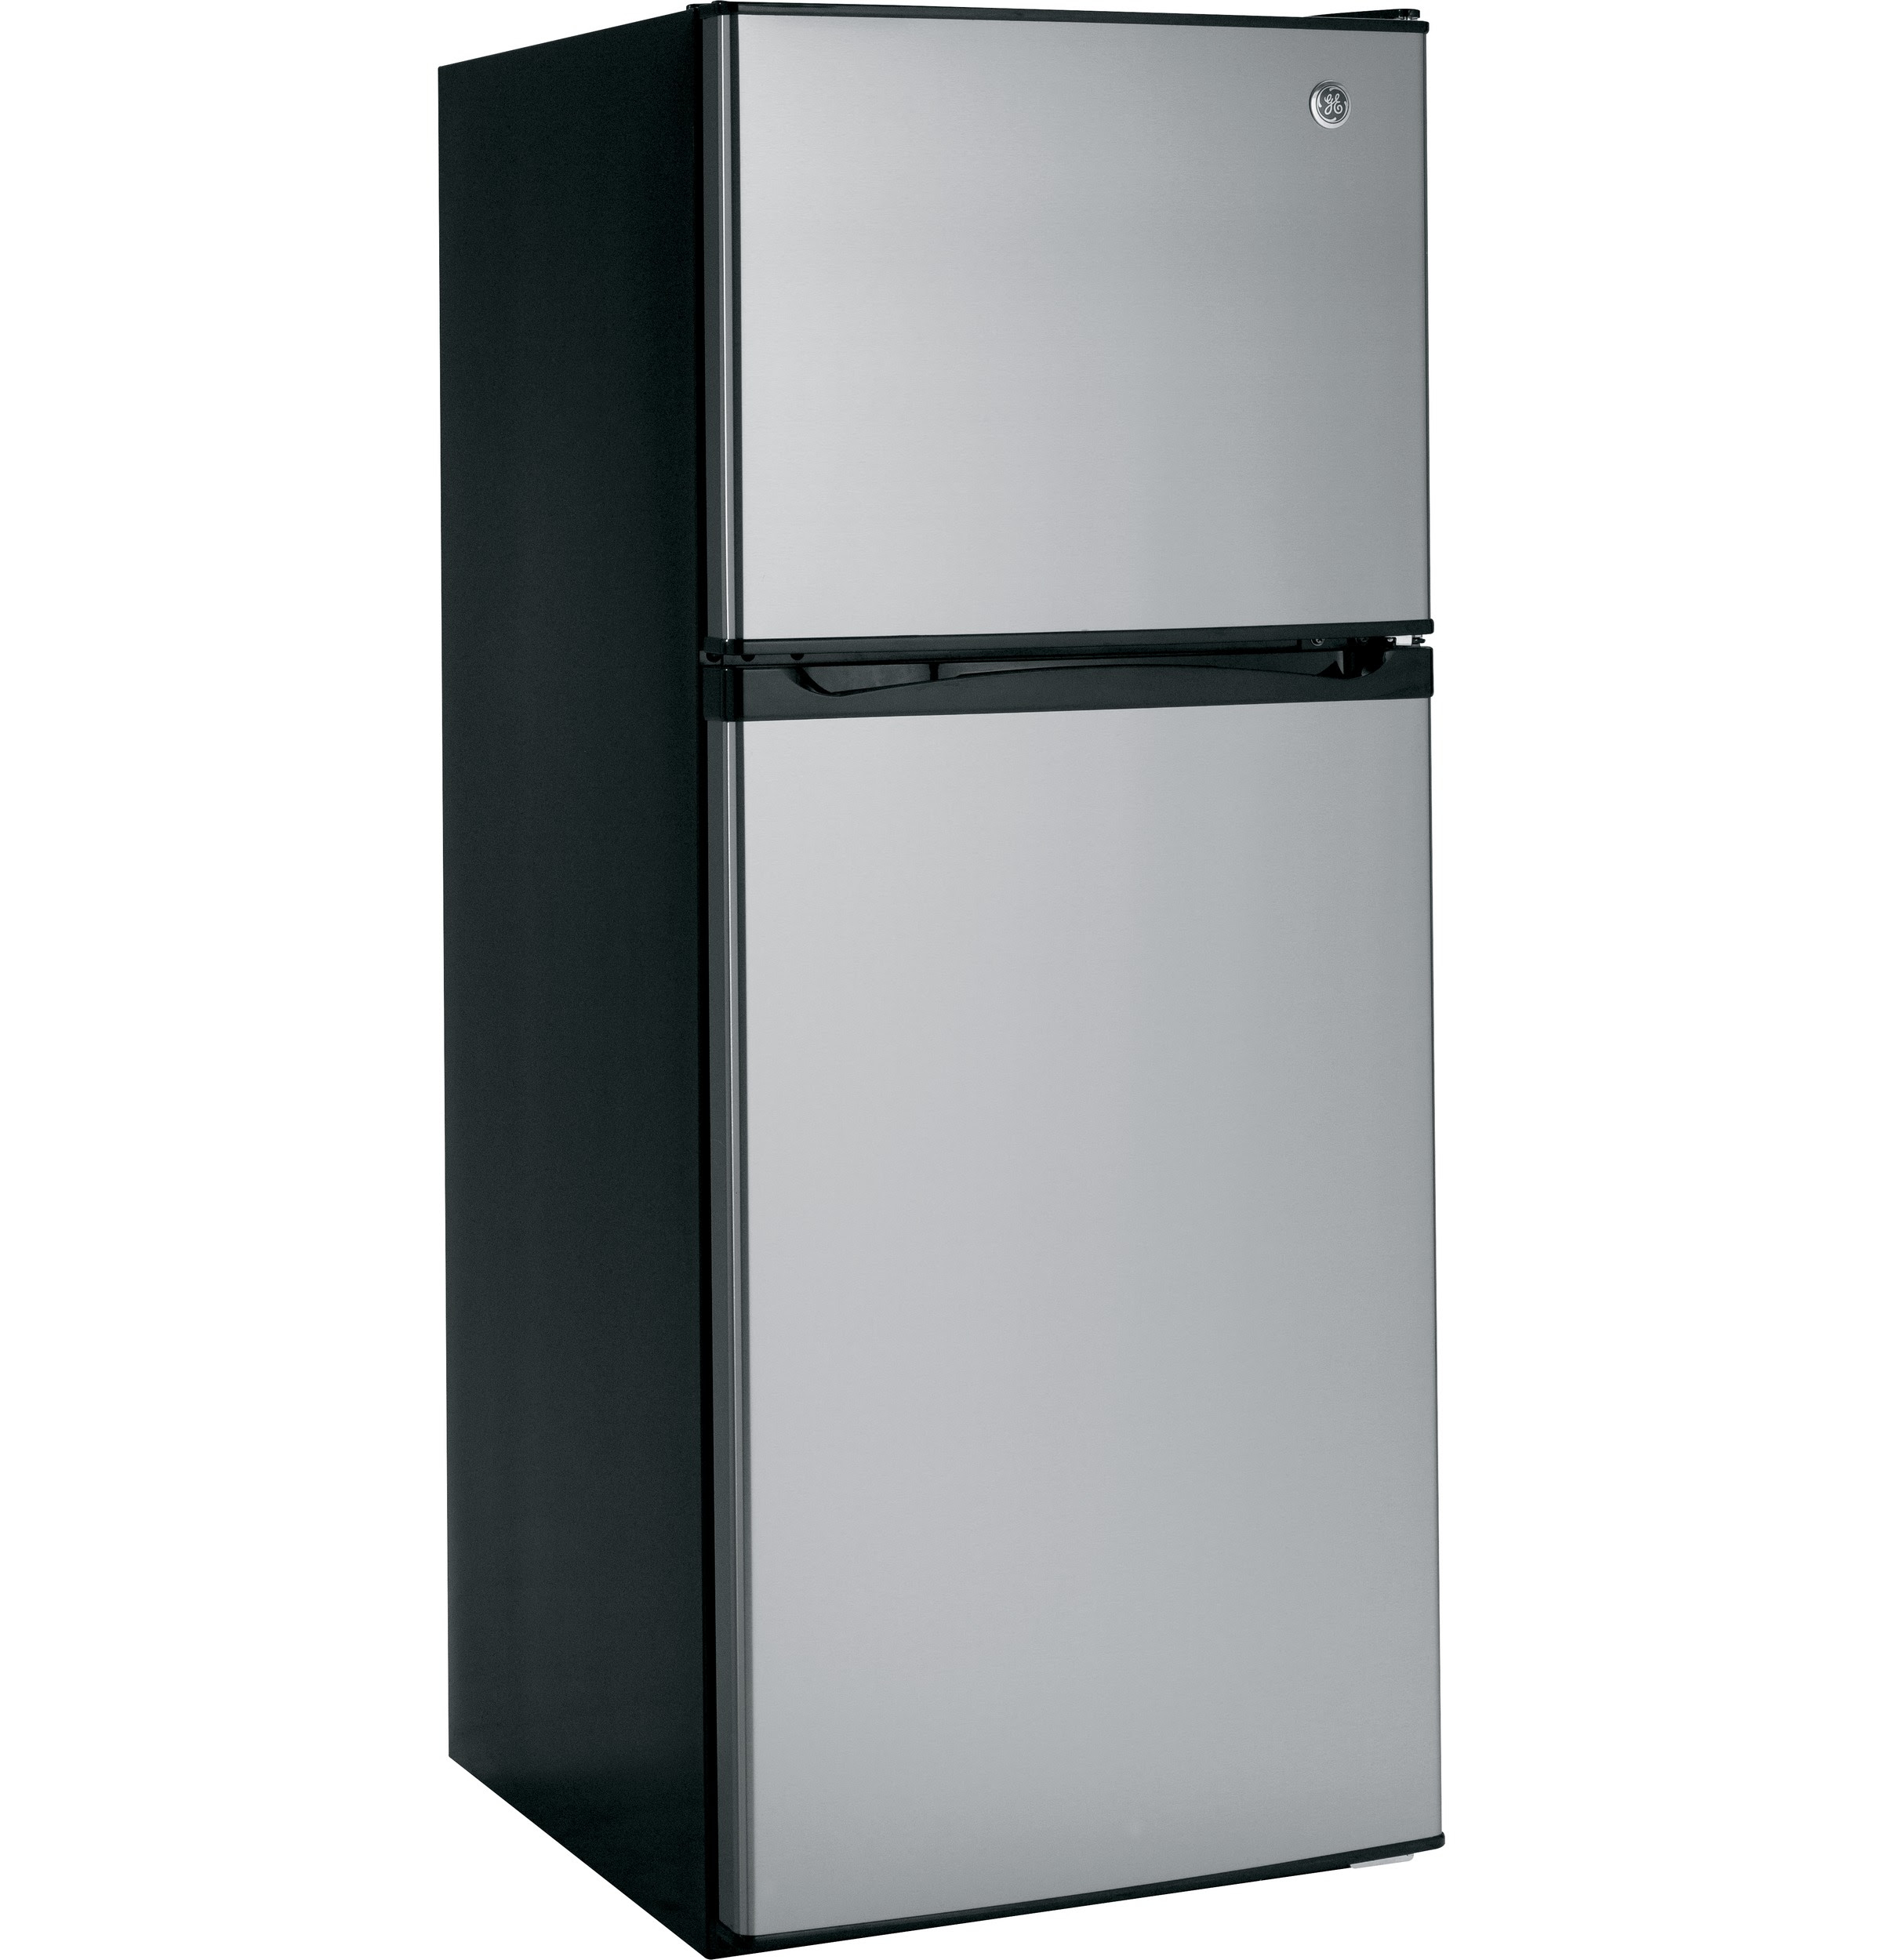 GE 11 6 cu ft Top Freezer Refrigerator GPS12FSHSB